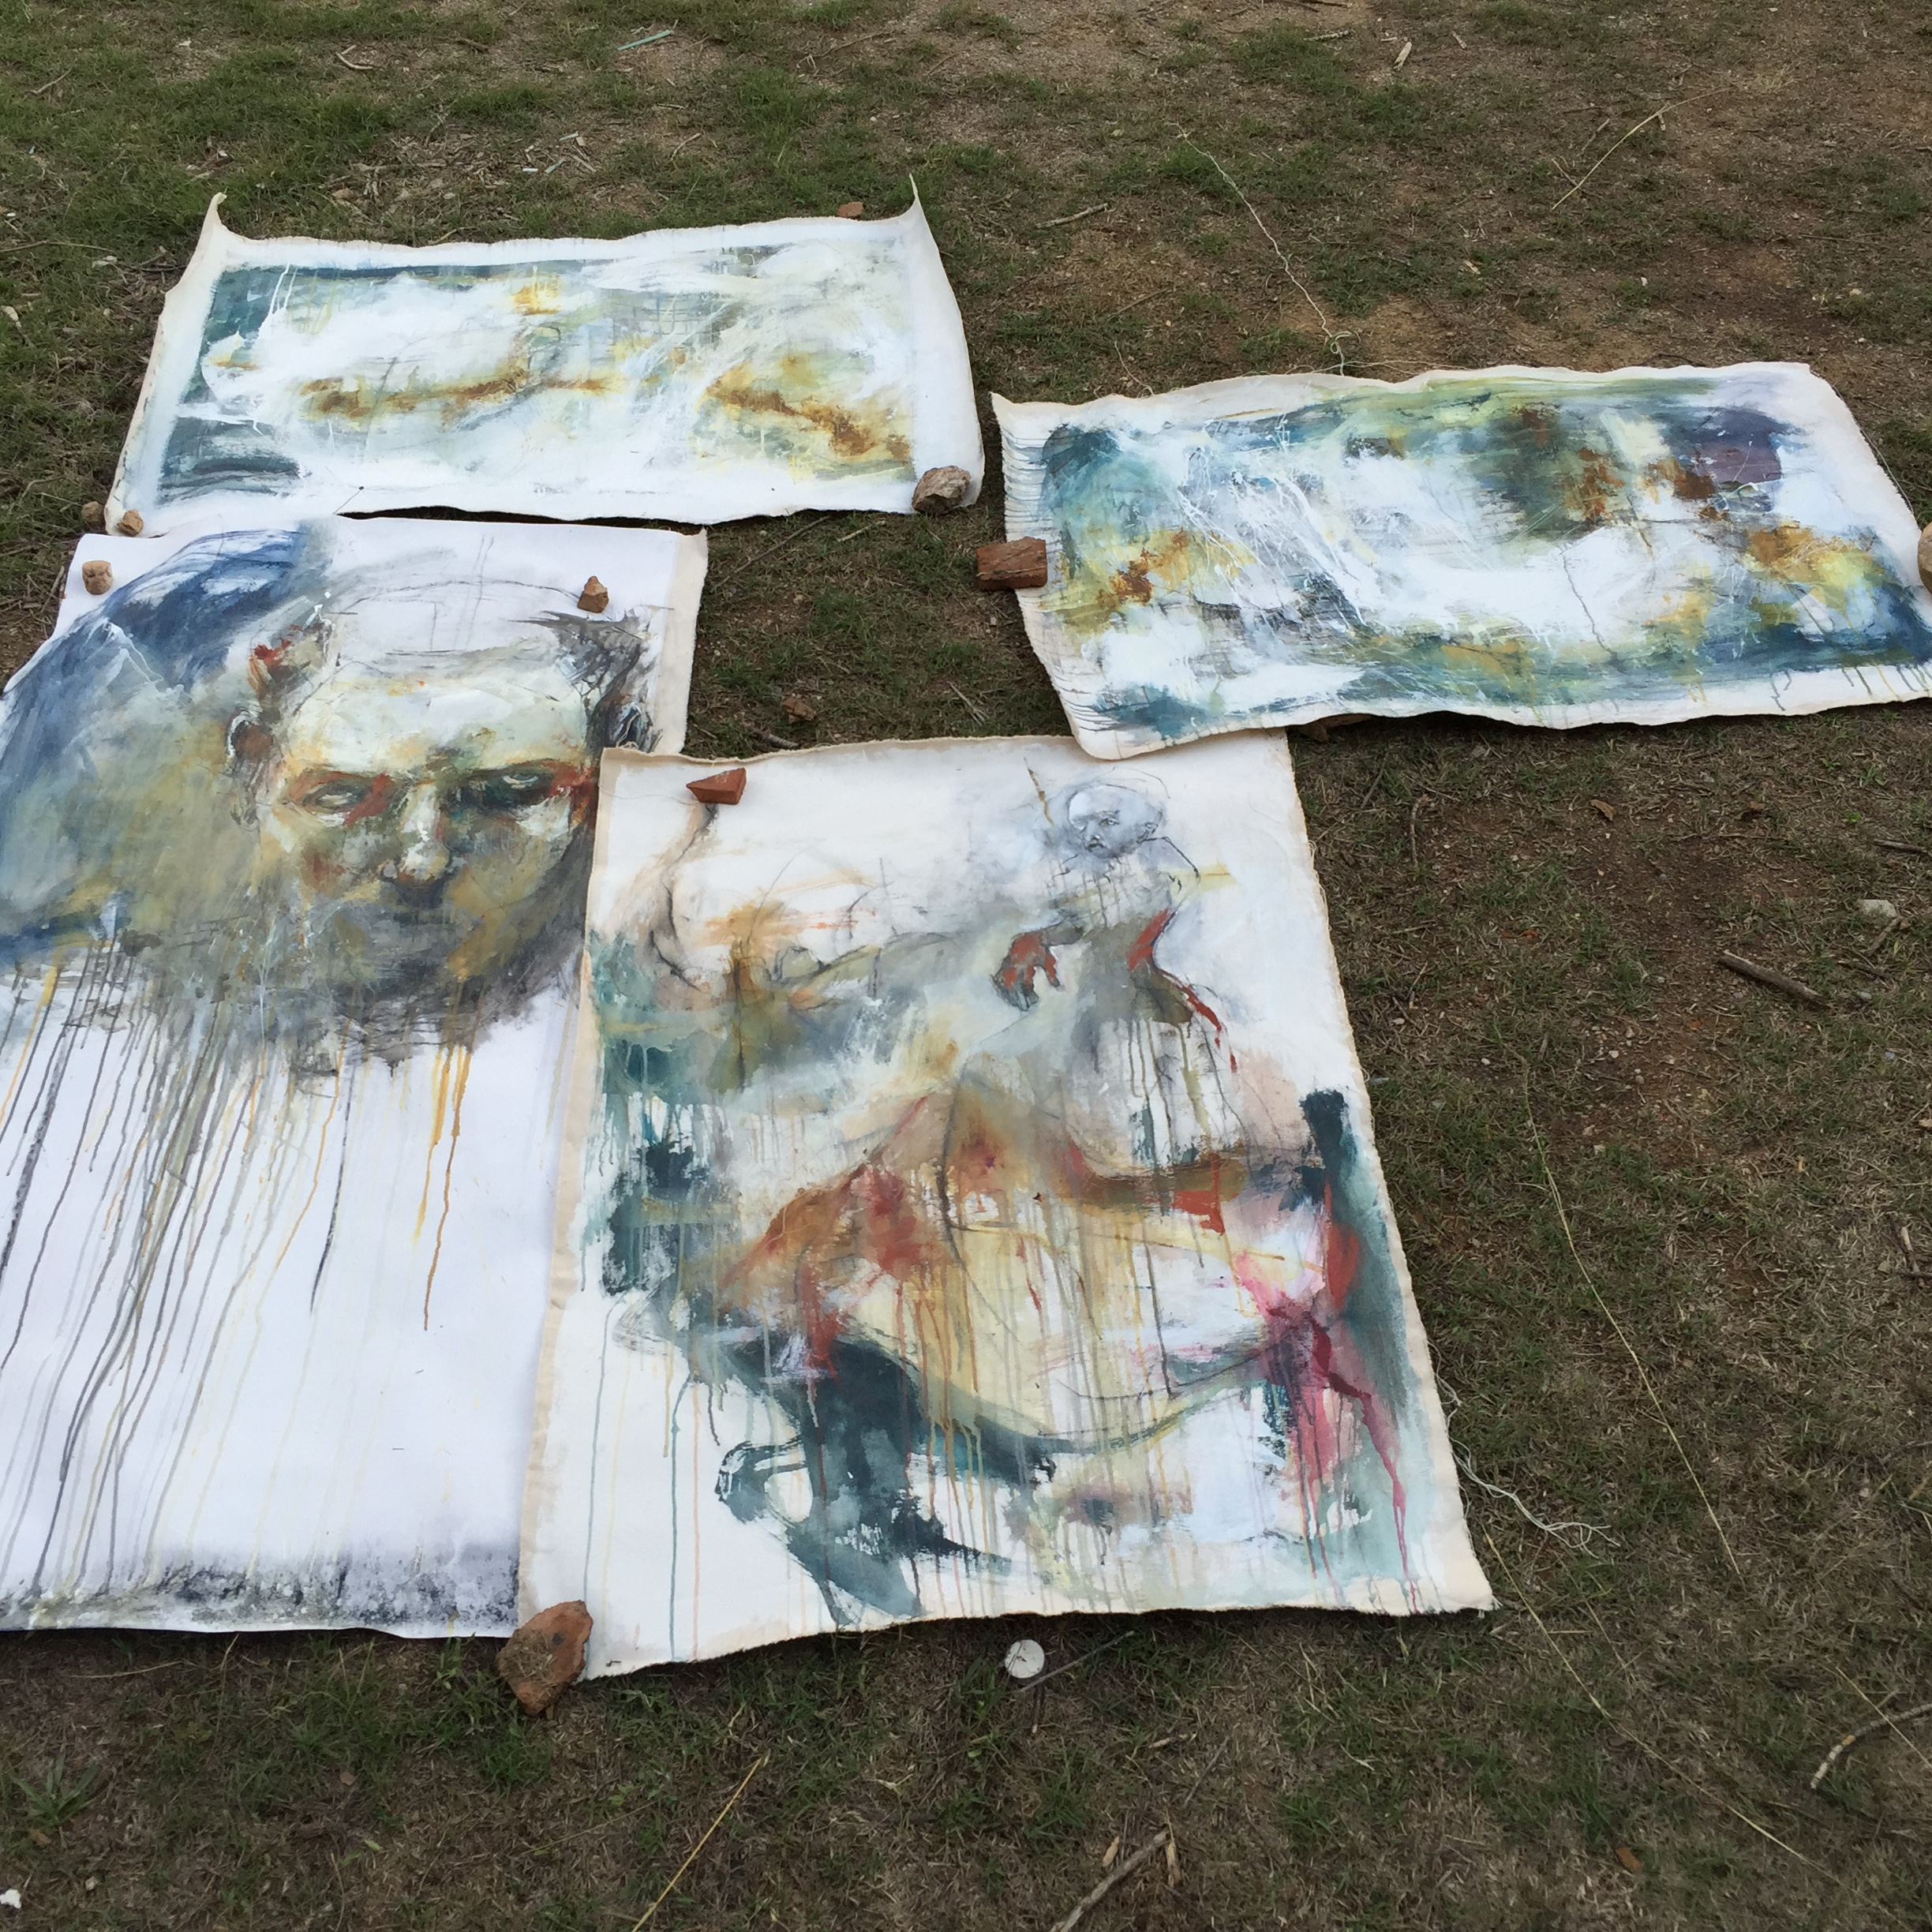 Some of Gillian's work from the week of painting.